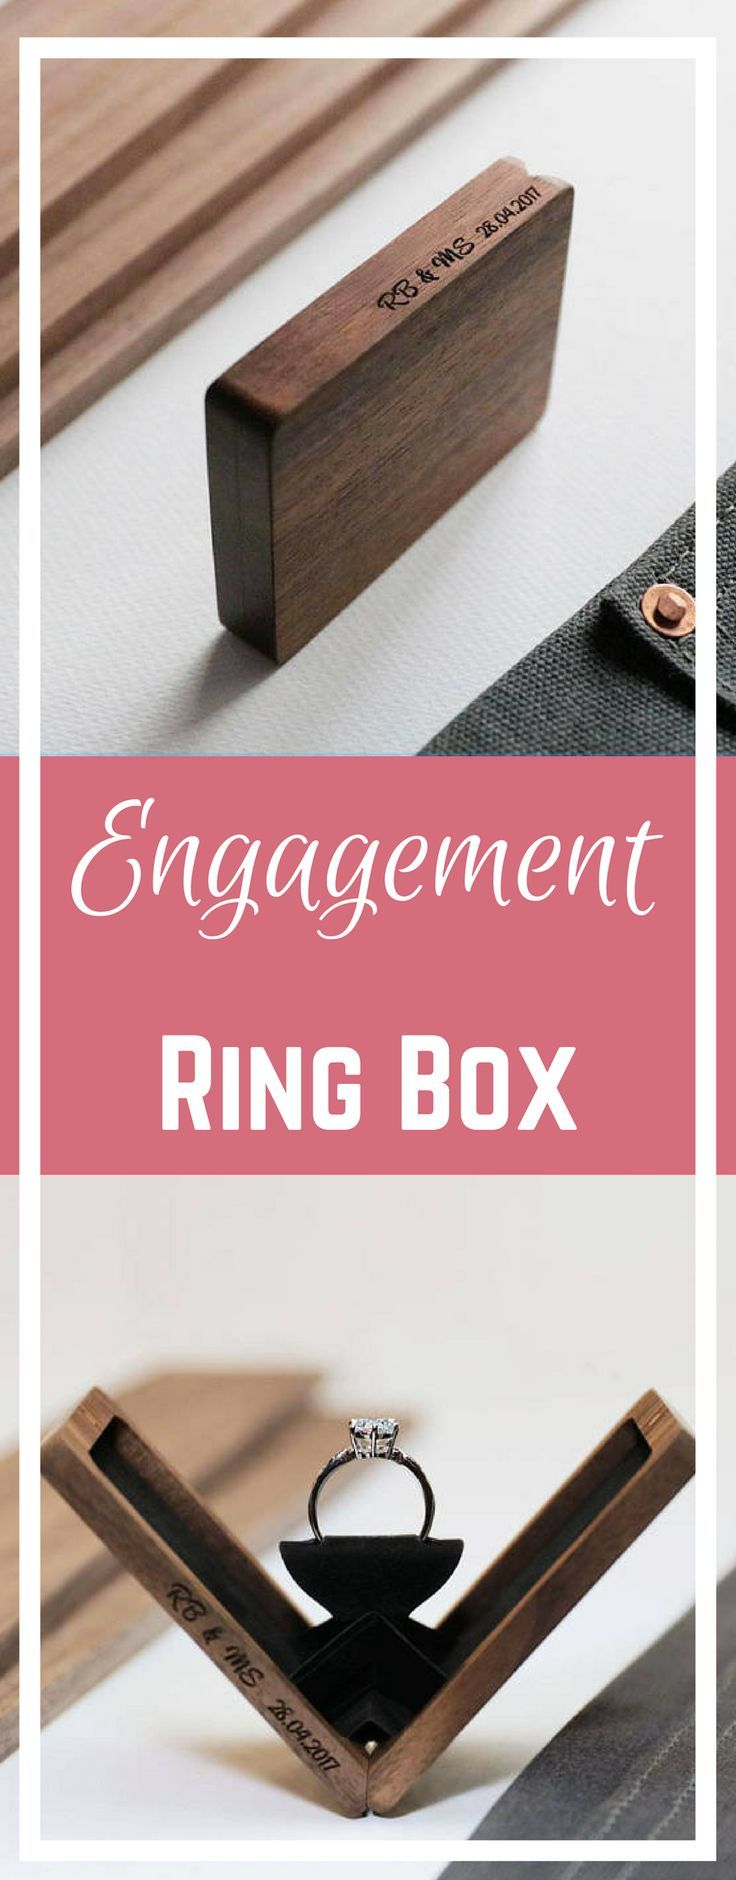 47 best engagement ring boxes images on Pinterest   Wedding ring box ...